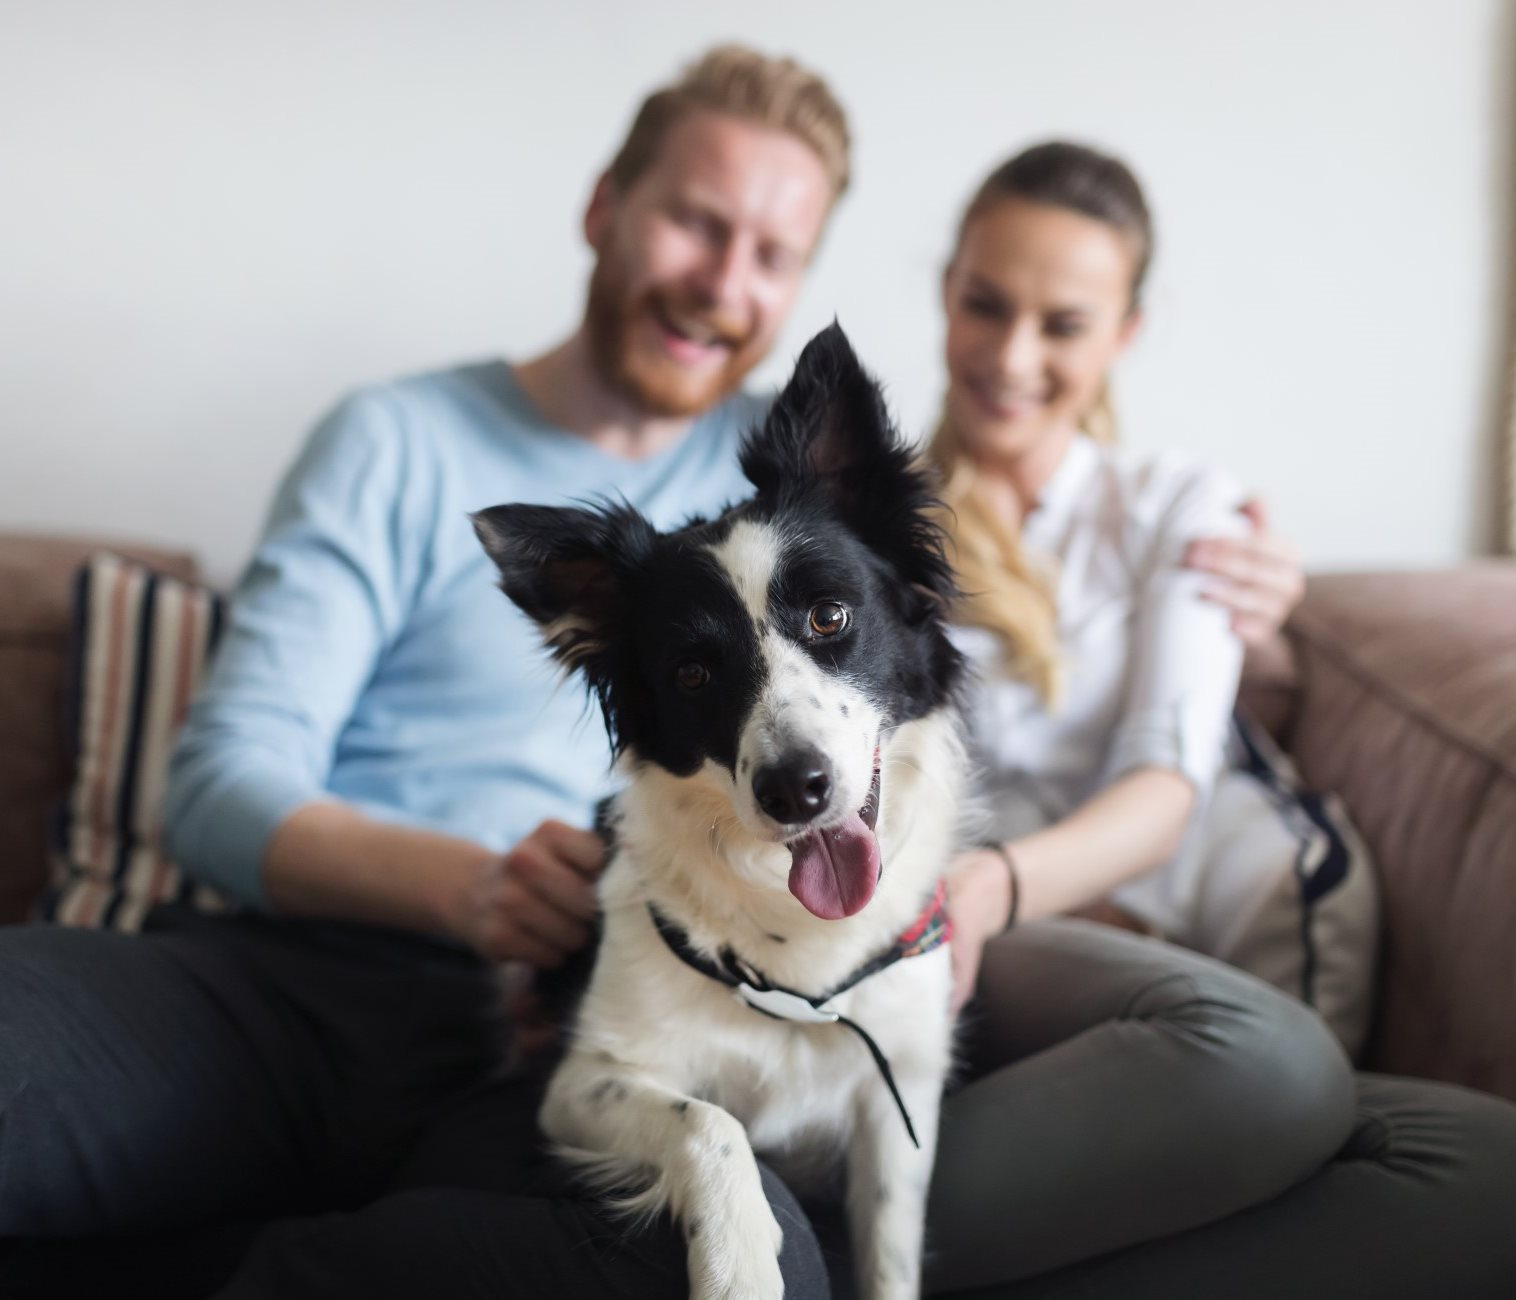 Couple Sitting on Couch with Dog In between